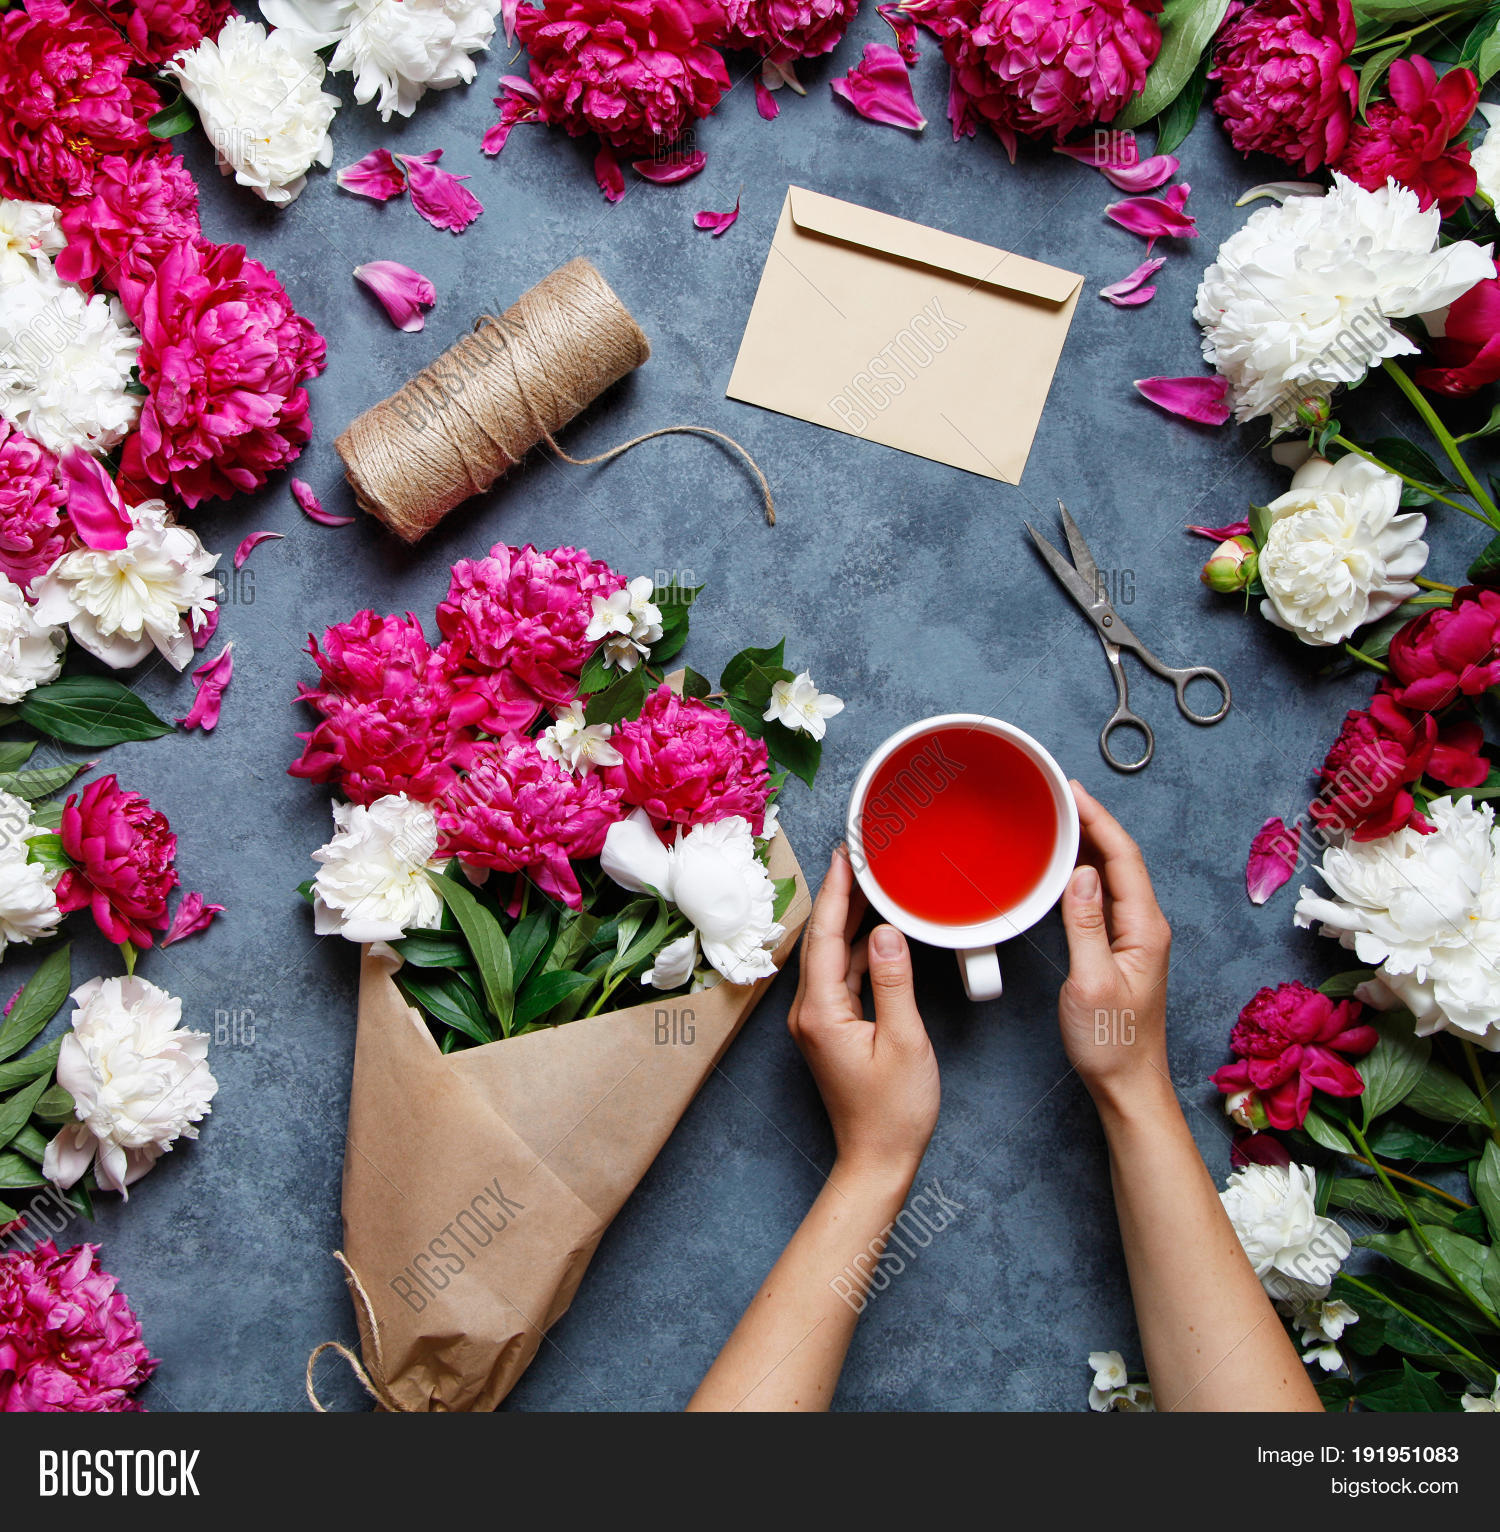 Flat lay summer flower image photo free trial bigstock flat lay summer flower background a bouquet of flowers of peonies the hands of izmirmasajfo